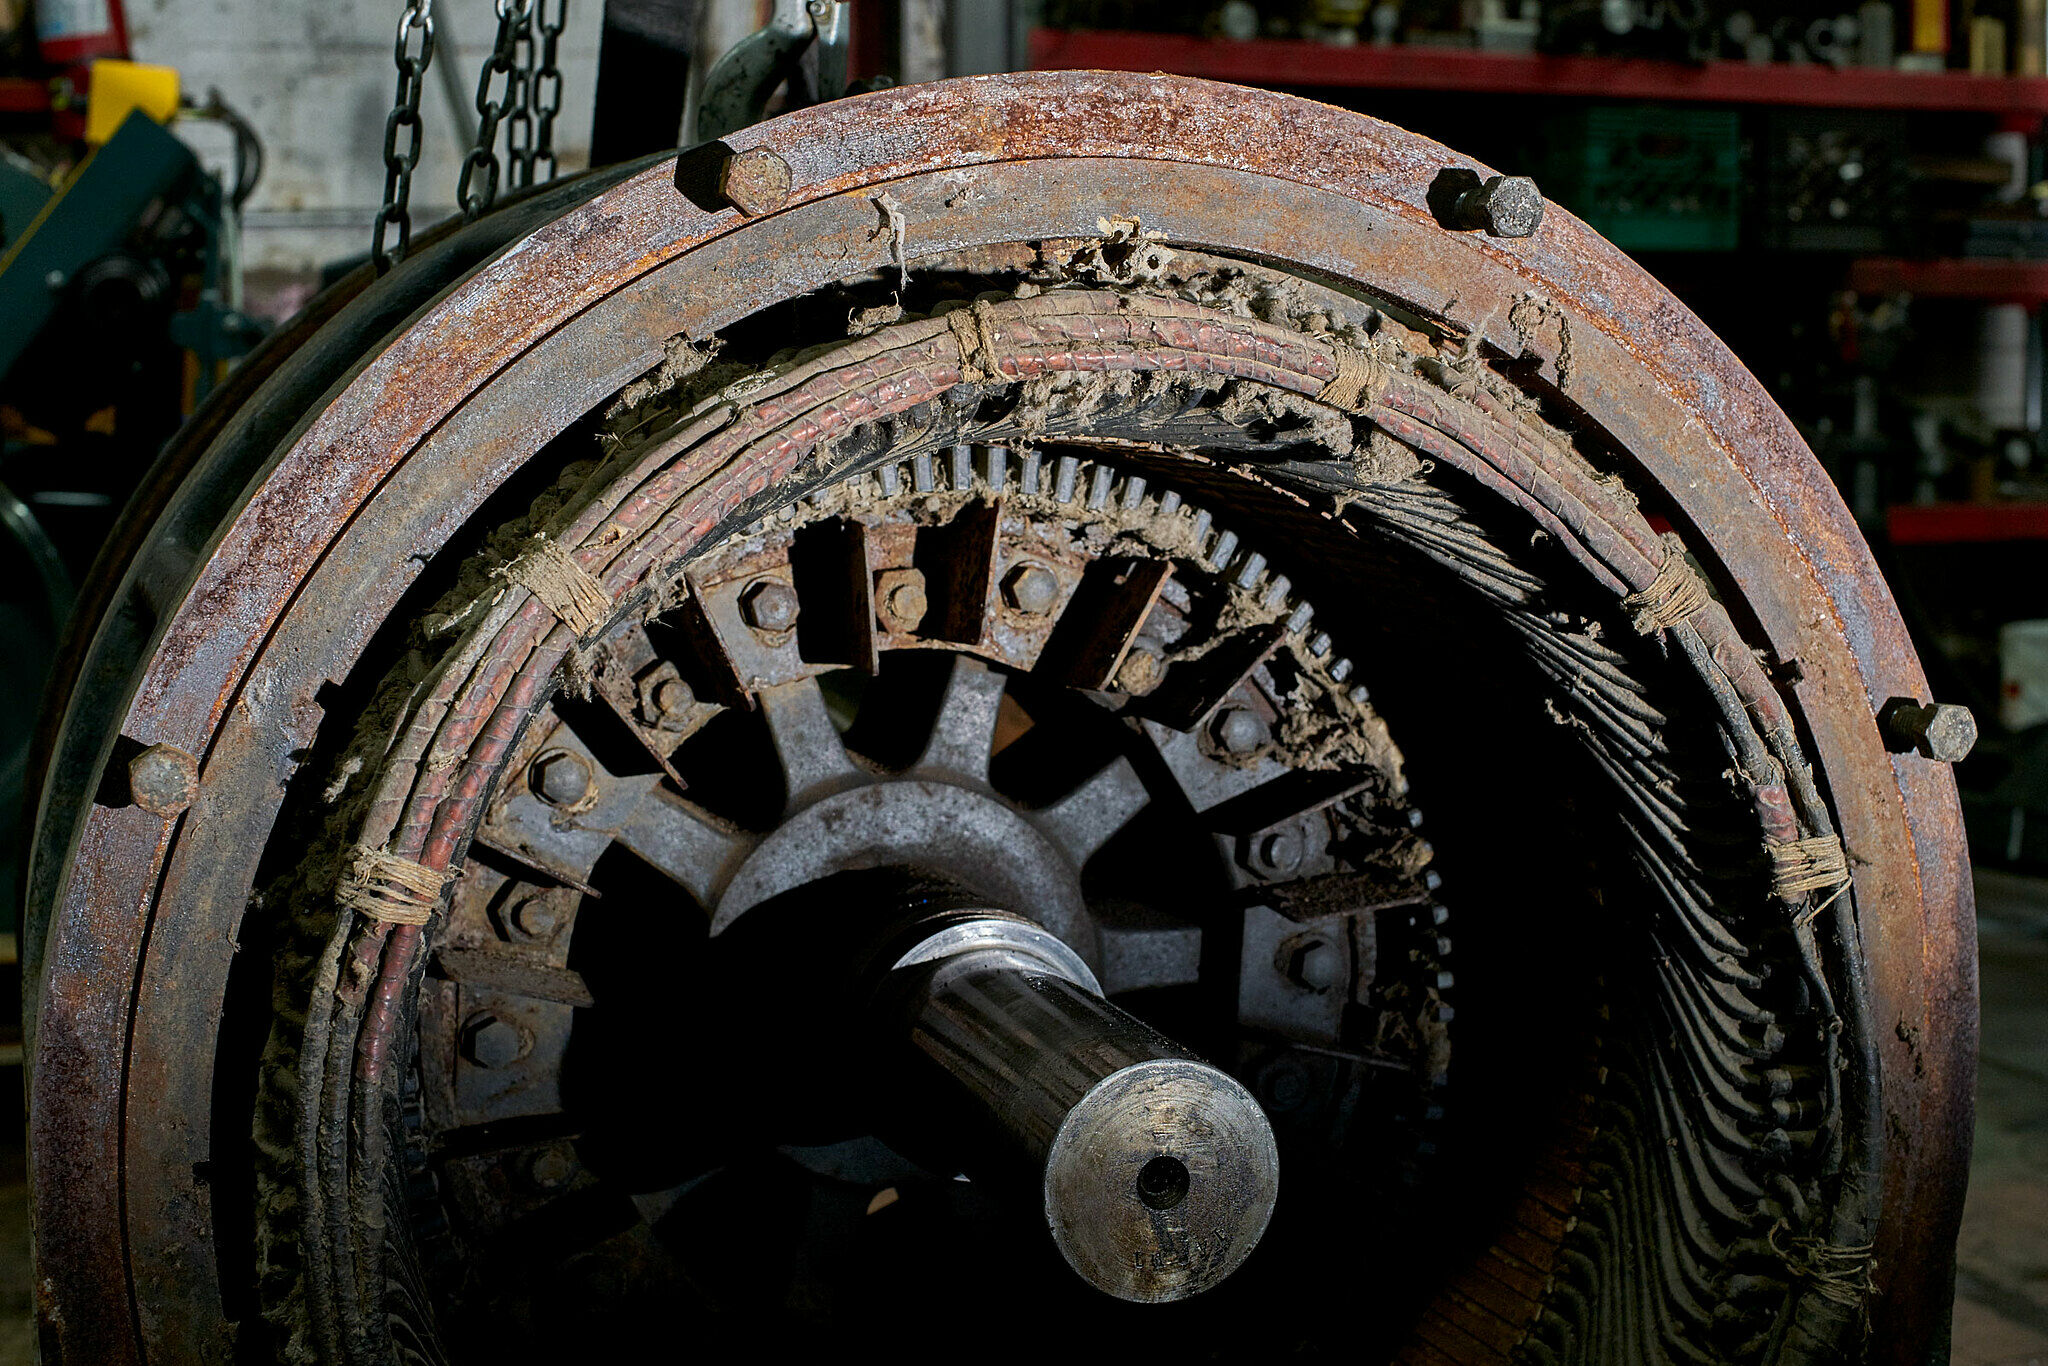 A cotton gin motor